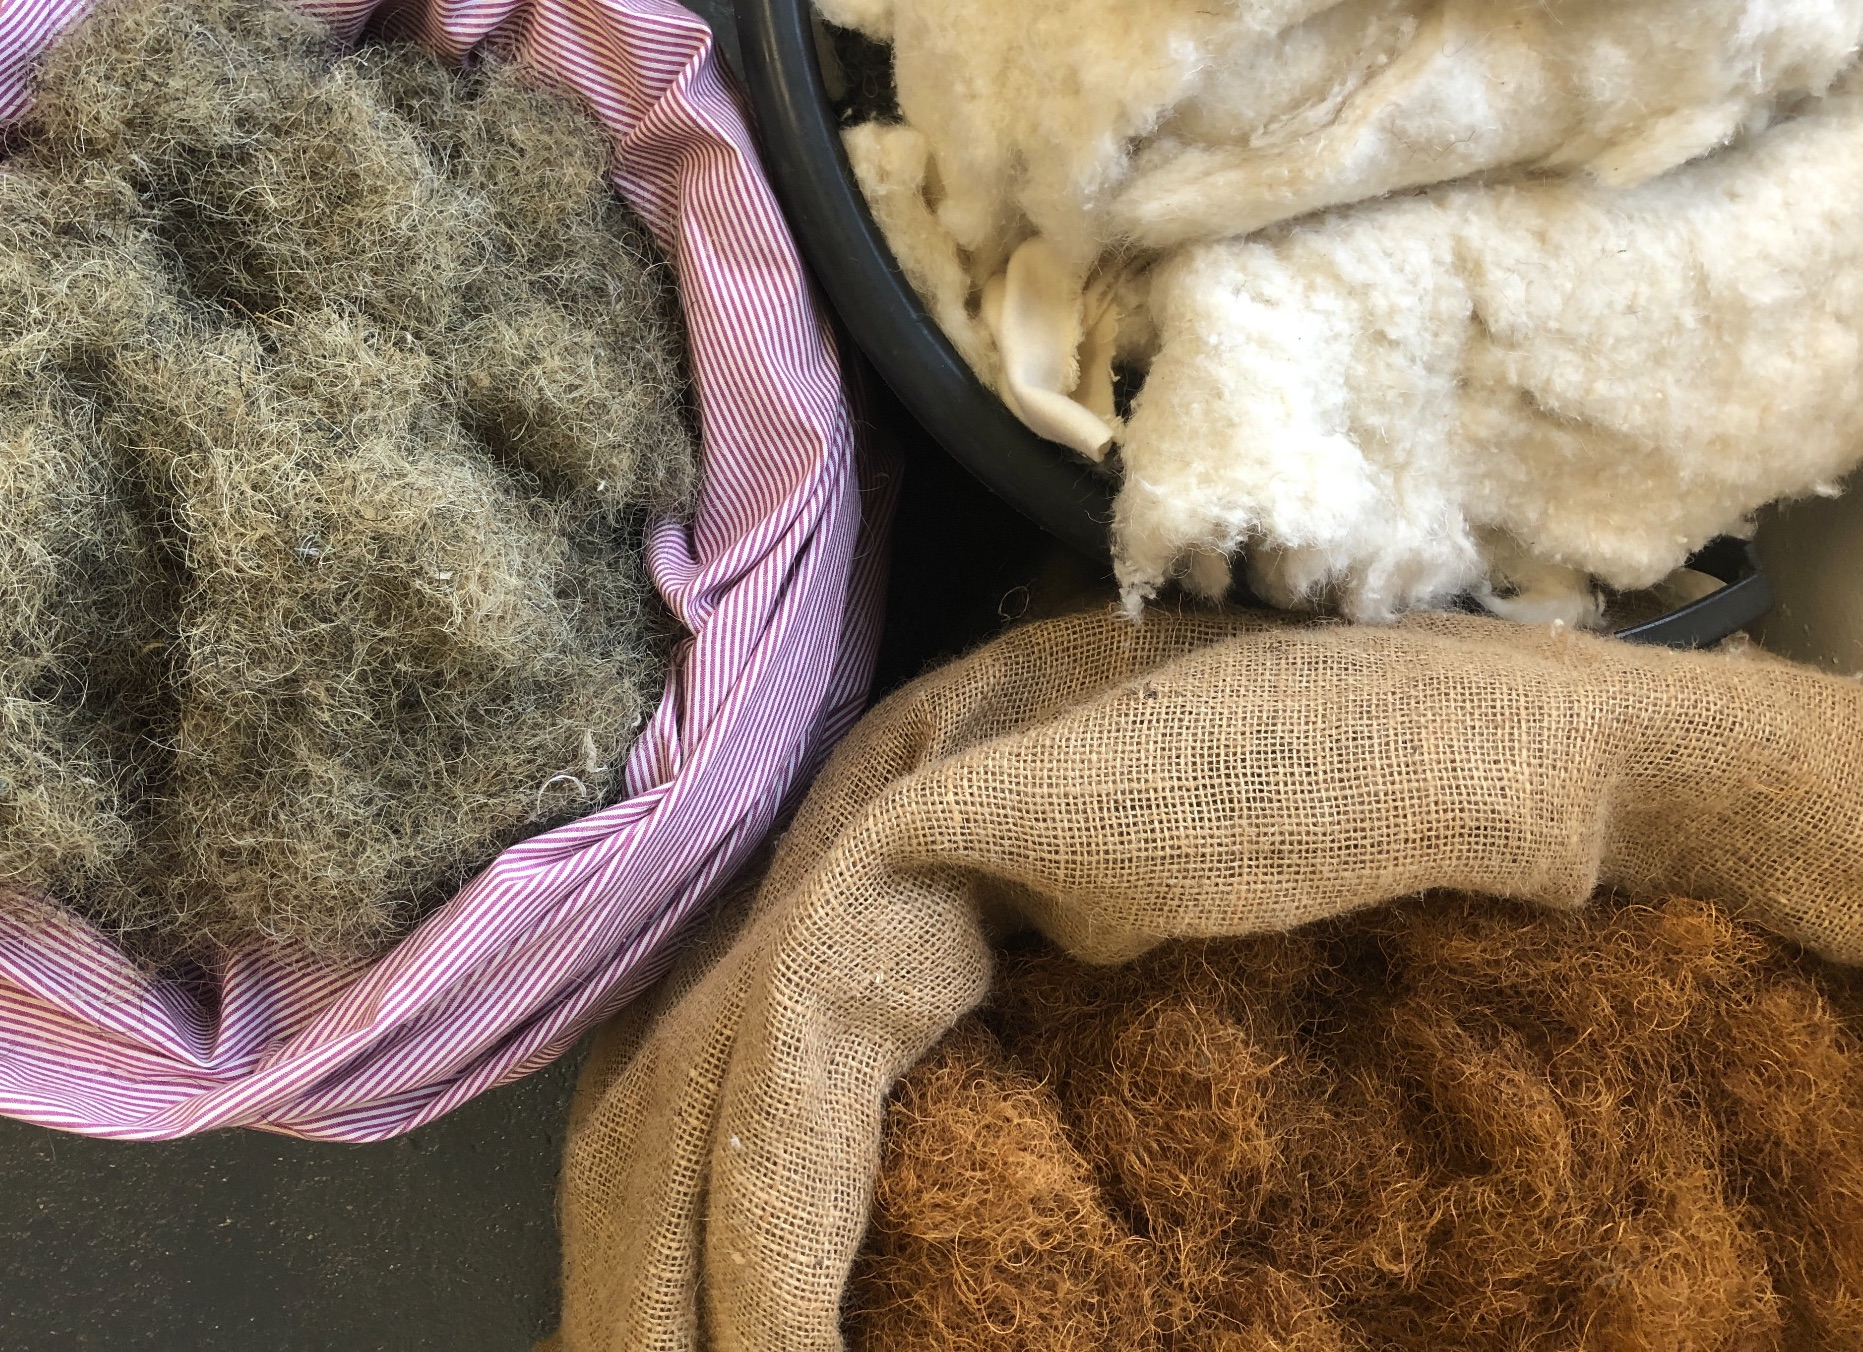 traditional upholstery  fillings include  coir hair and wool felt used by Spring Upholstery Brighton